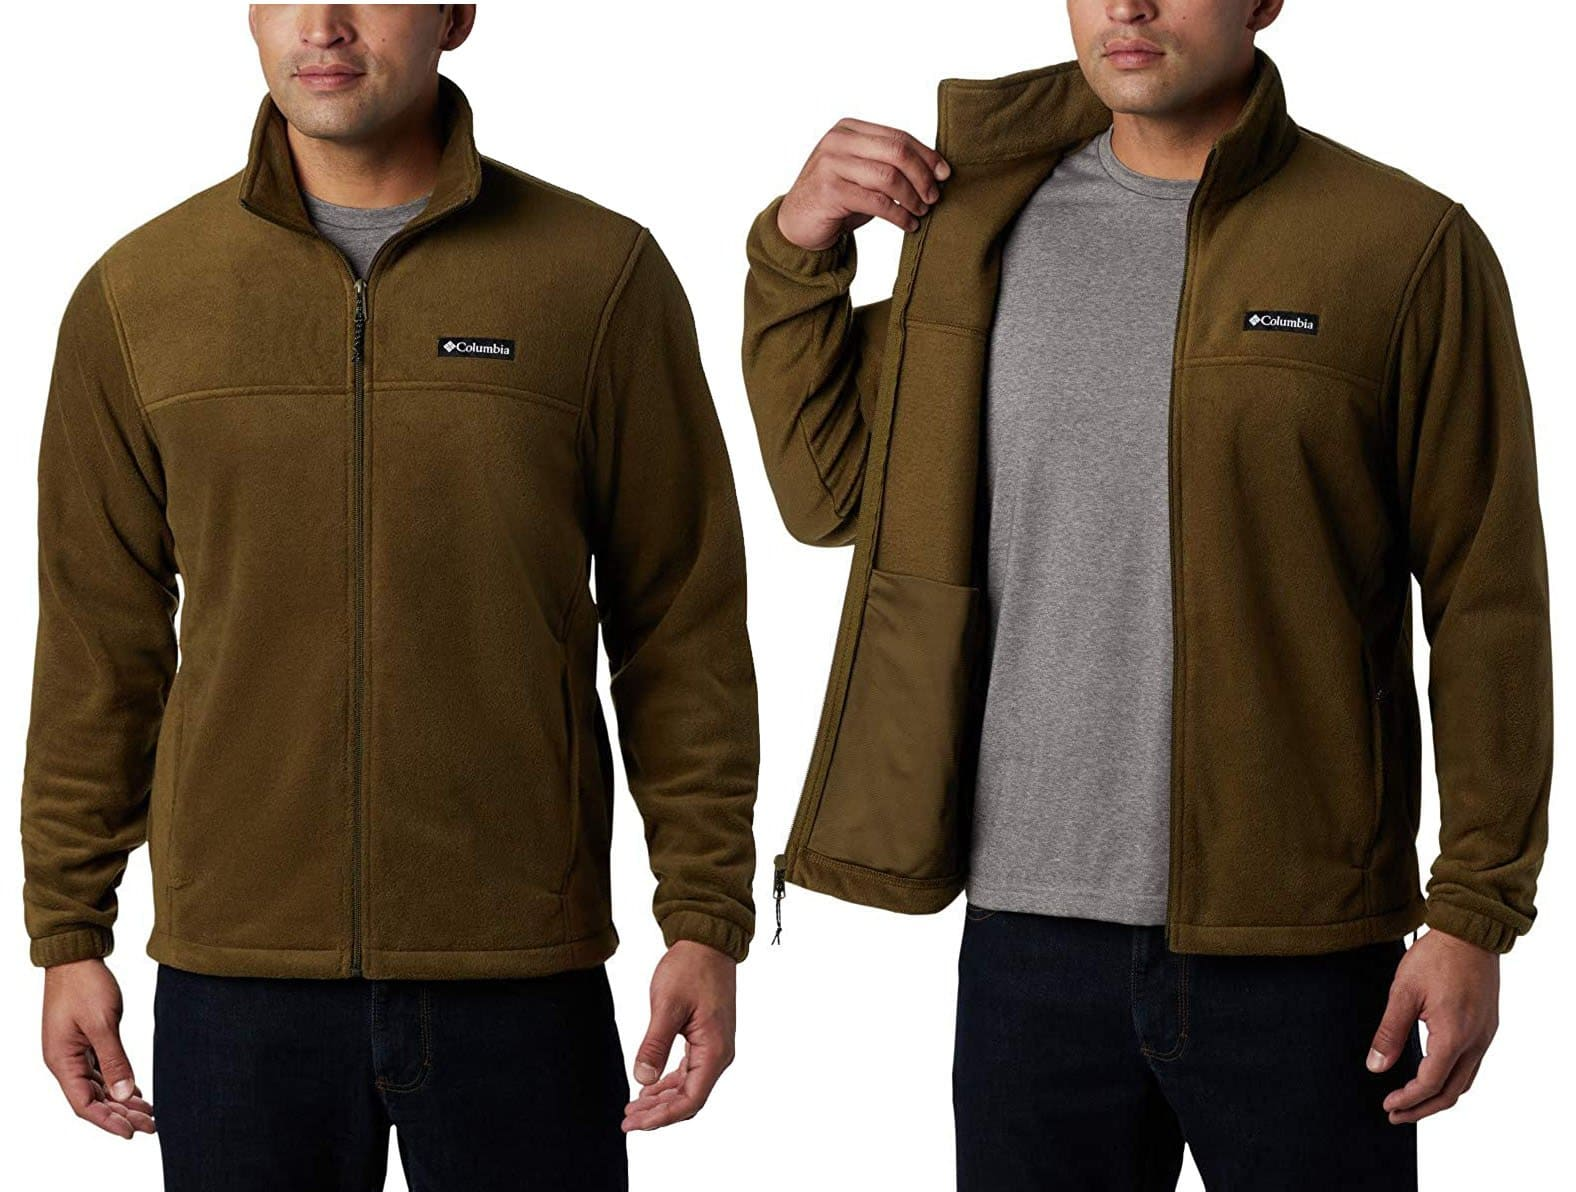 The Steens Mountain jacket is available in solid and two-tone colorways